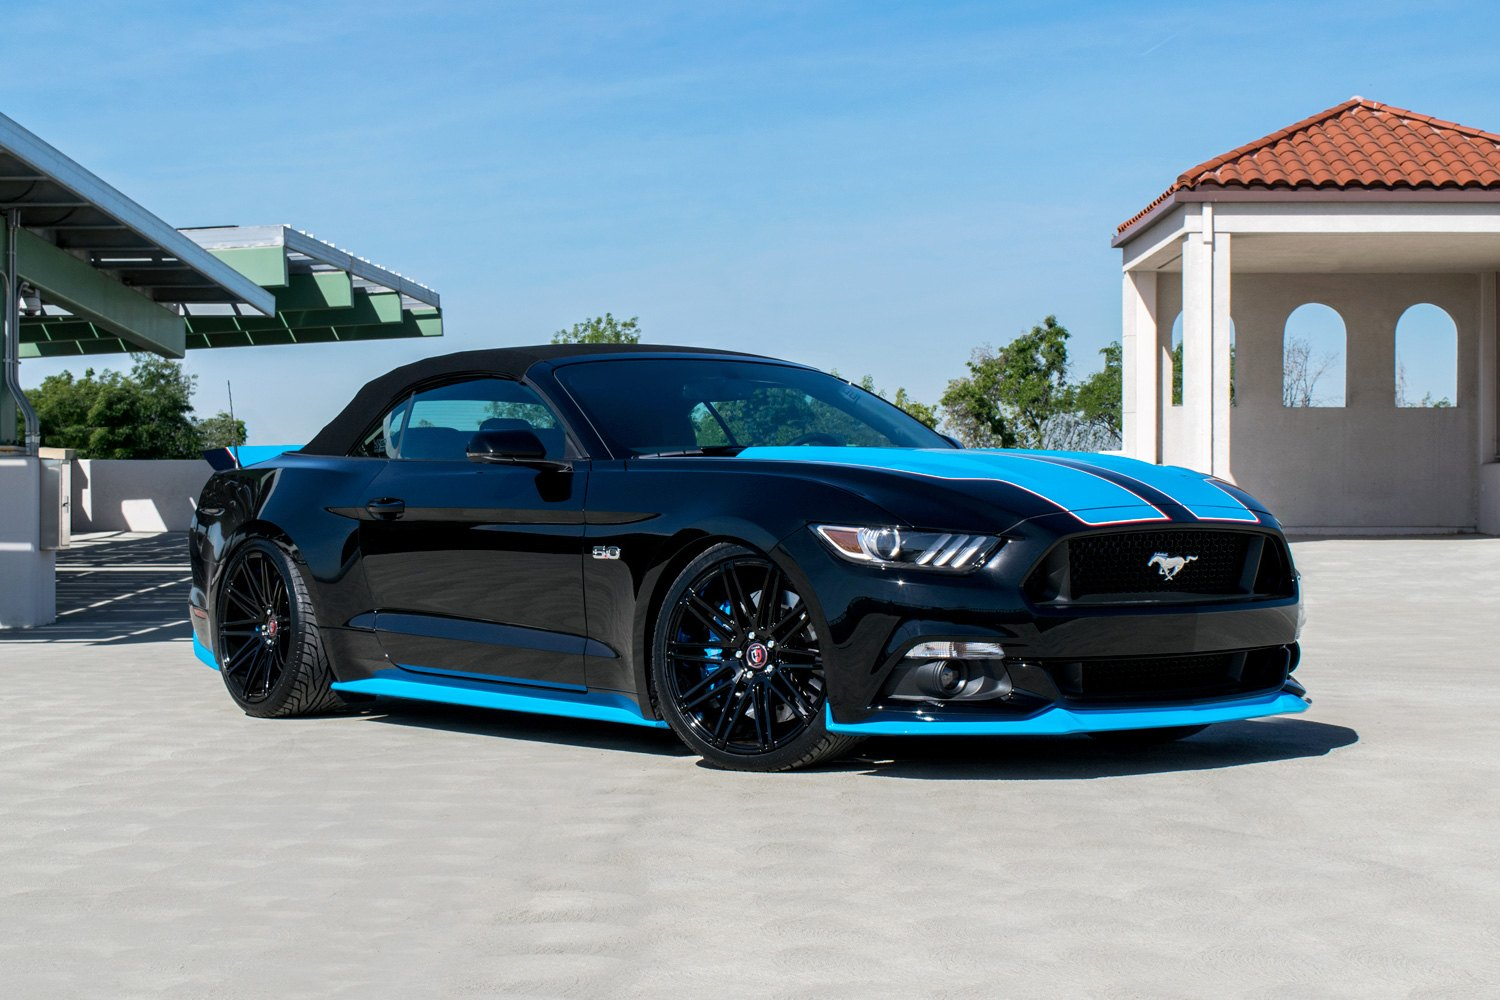 Ford Mustang Bolt Pattern Cool Decorating